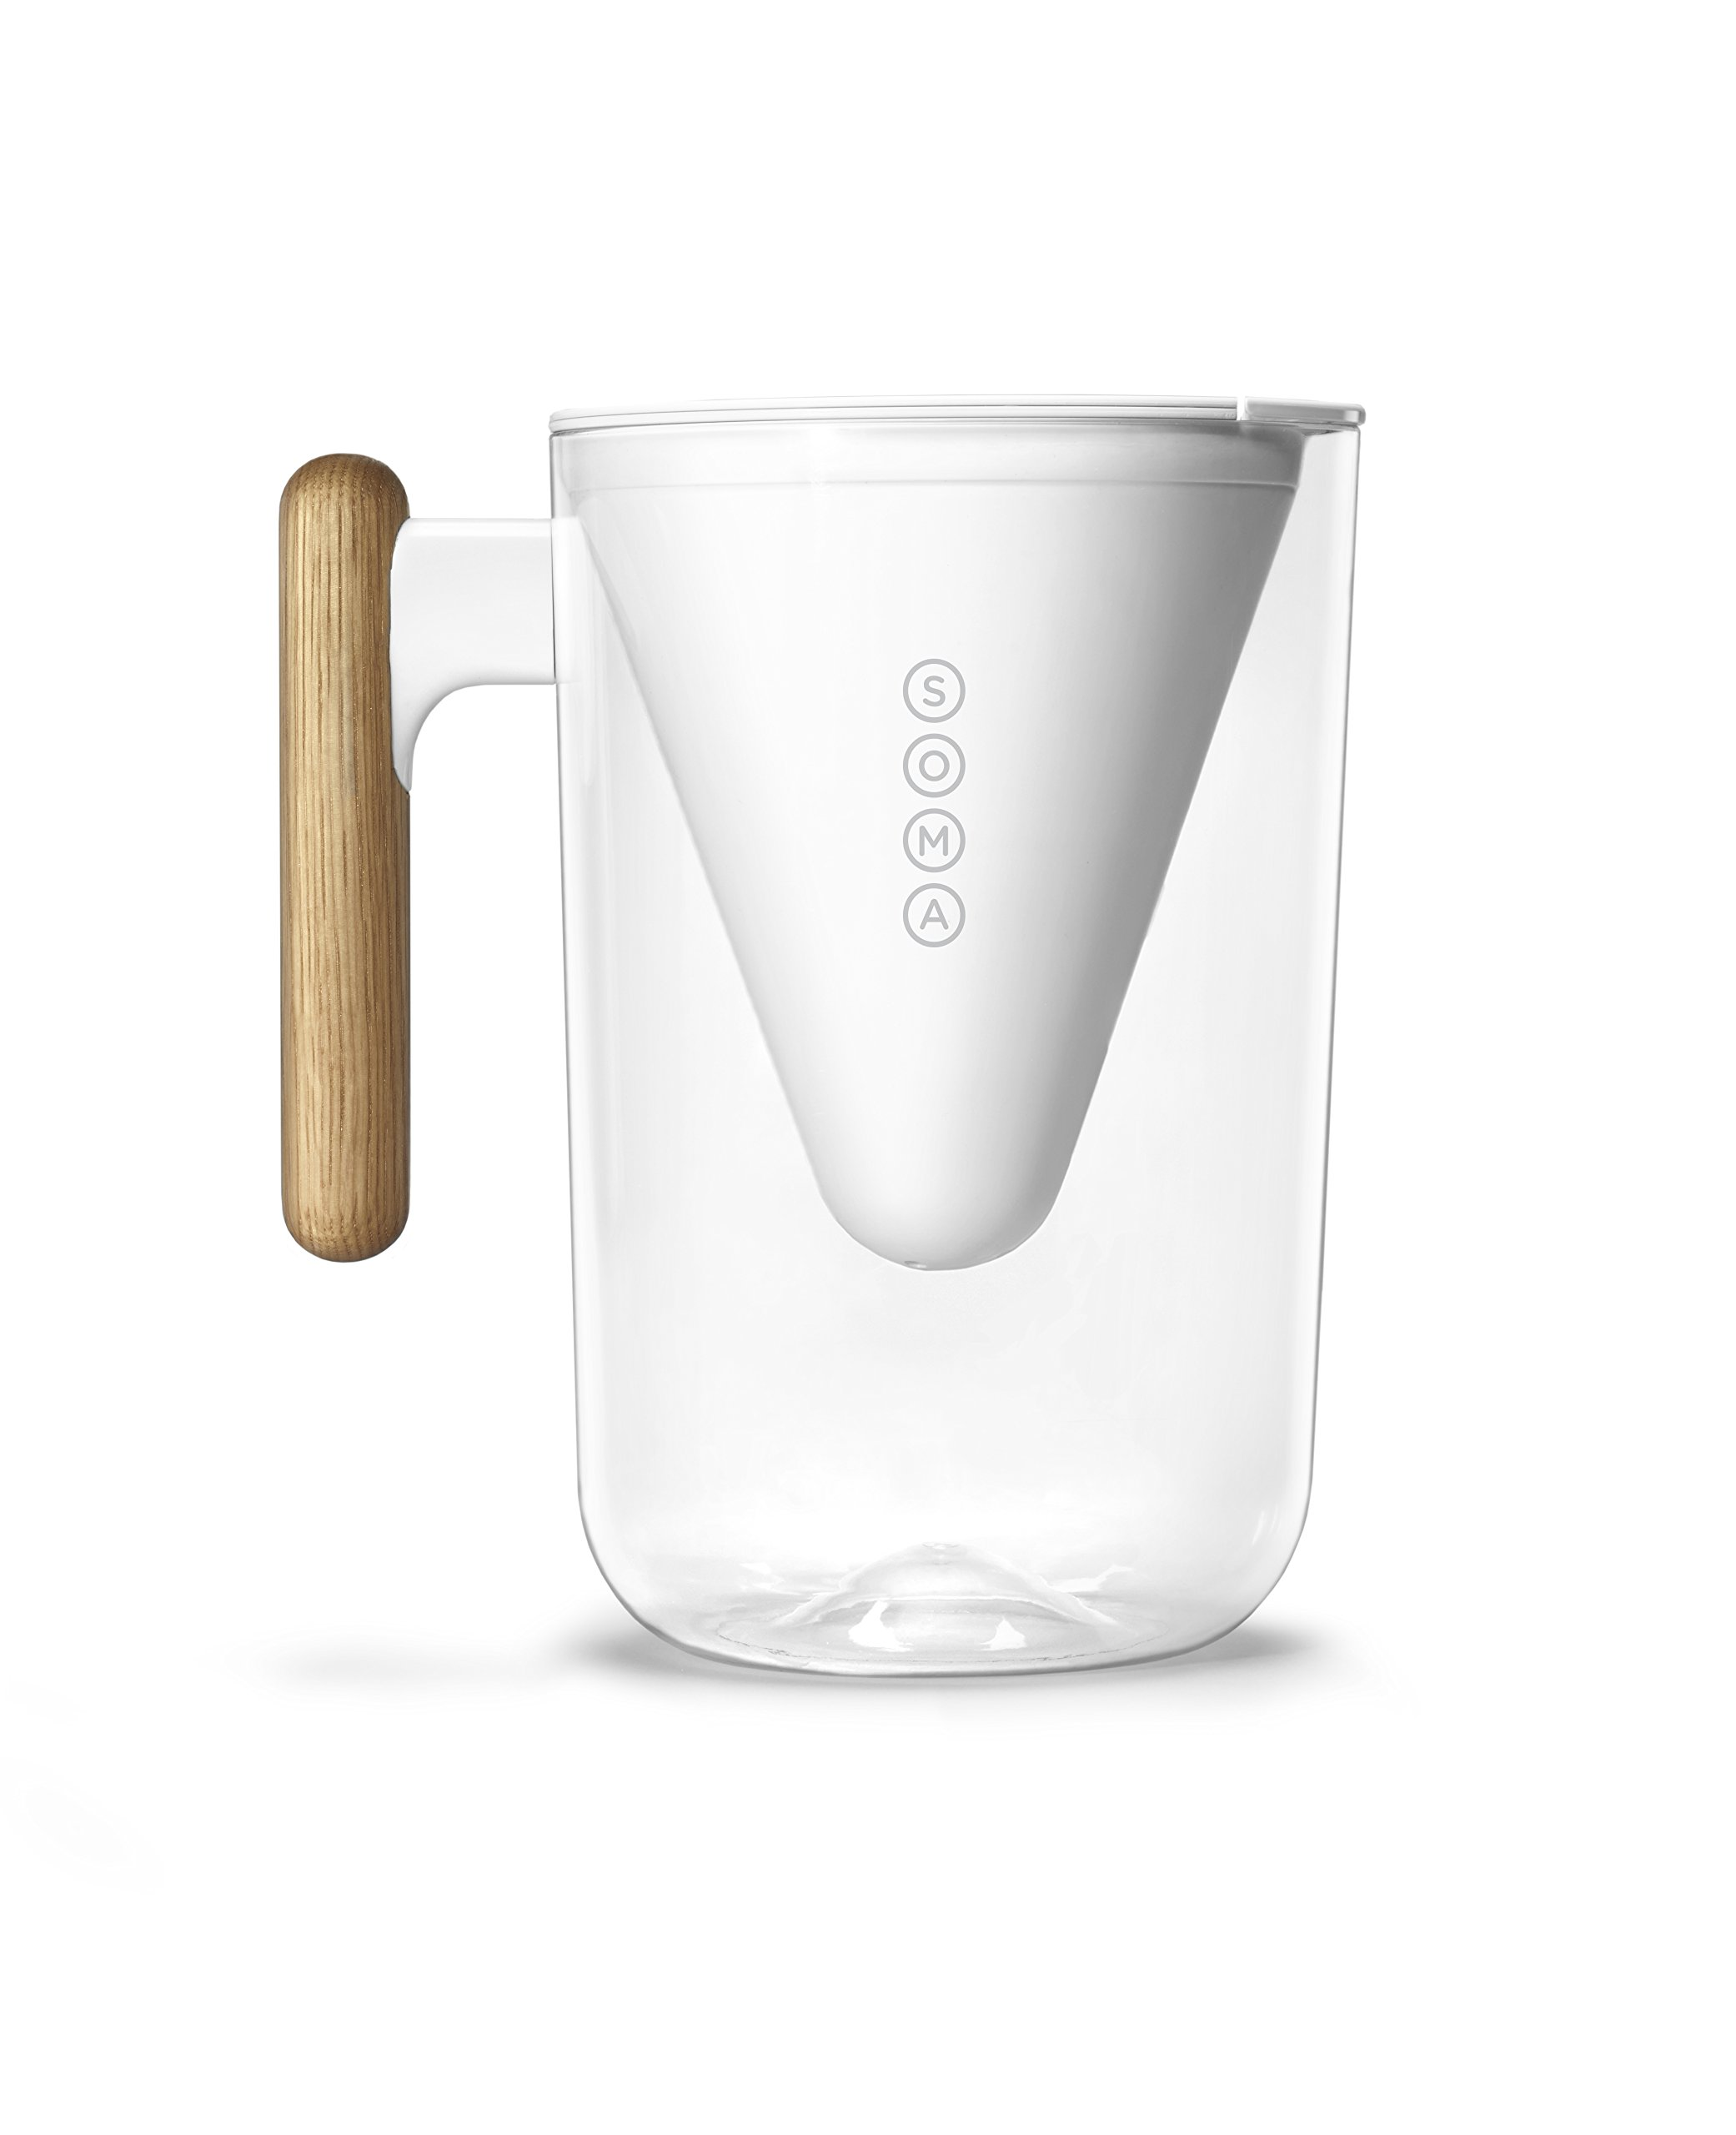 Soma 10-Cup Water Filter Pitcher by Soma